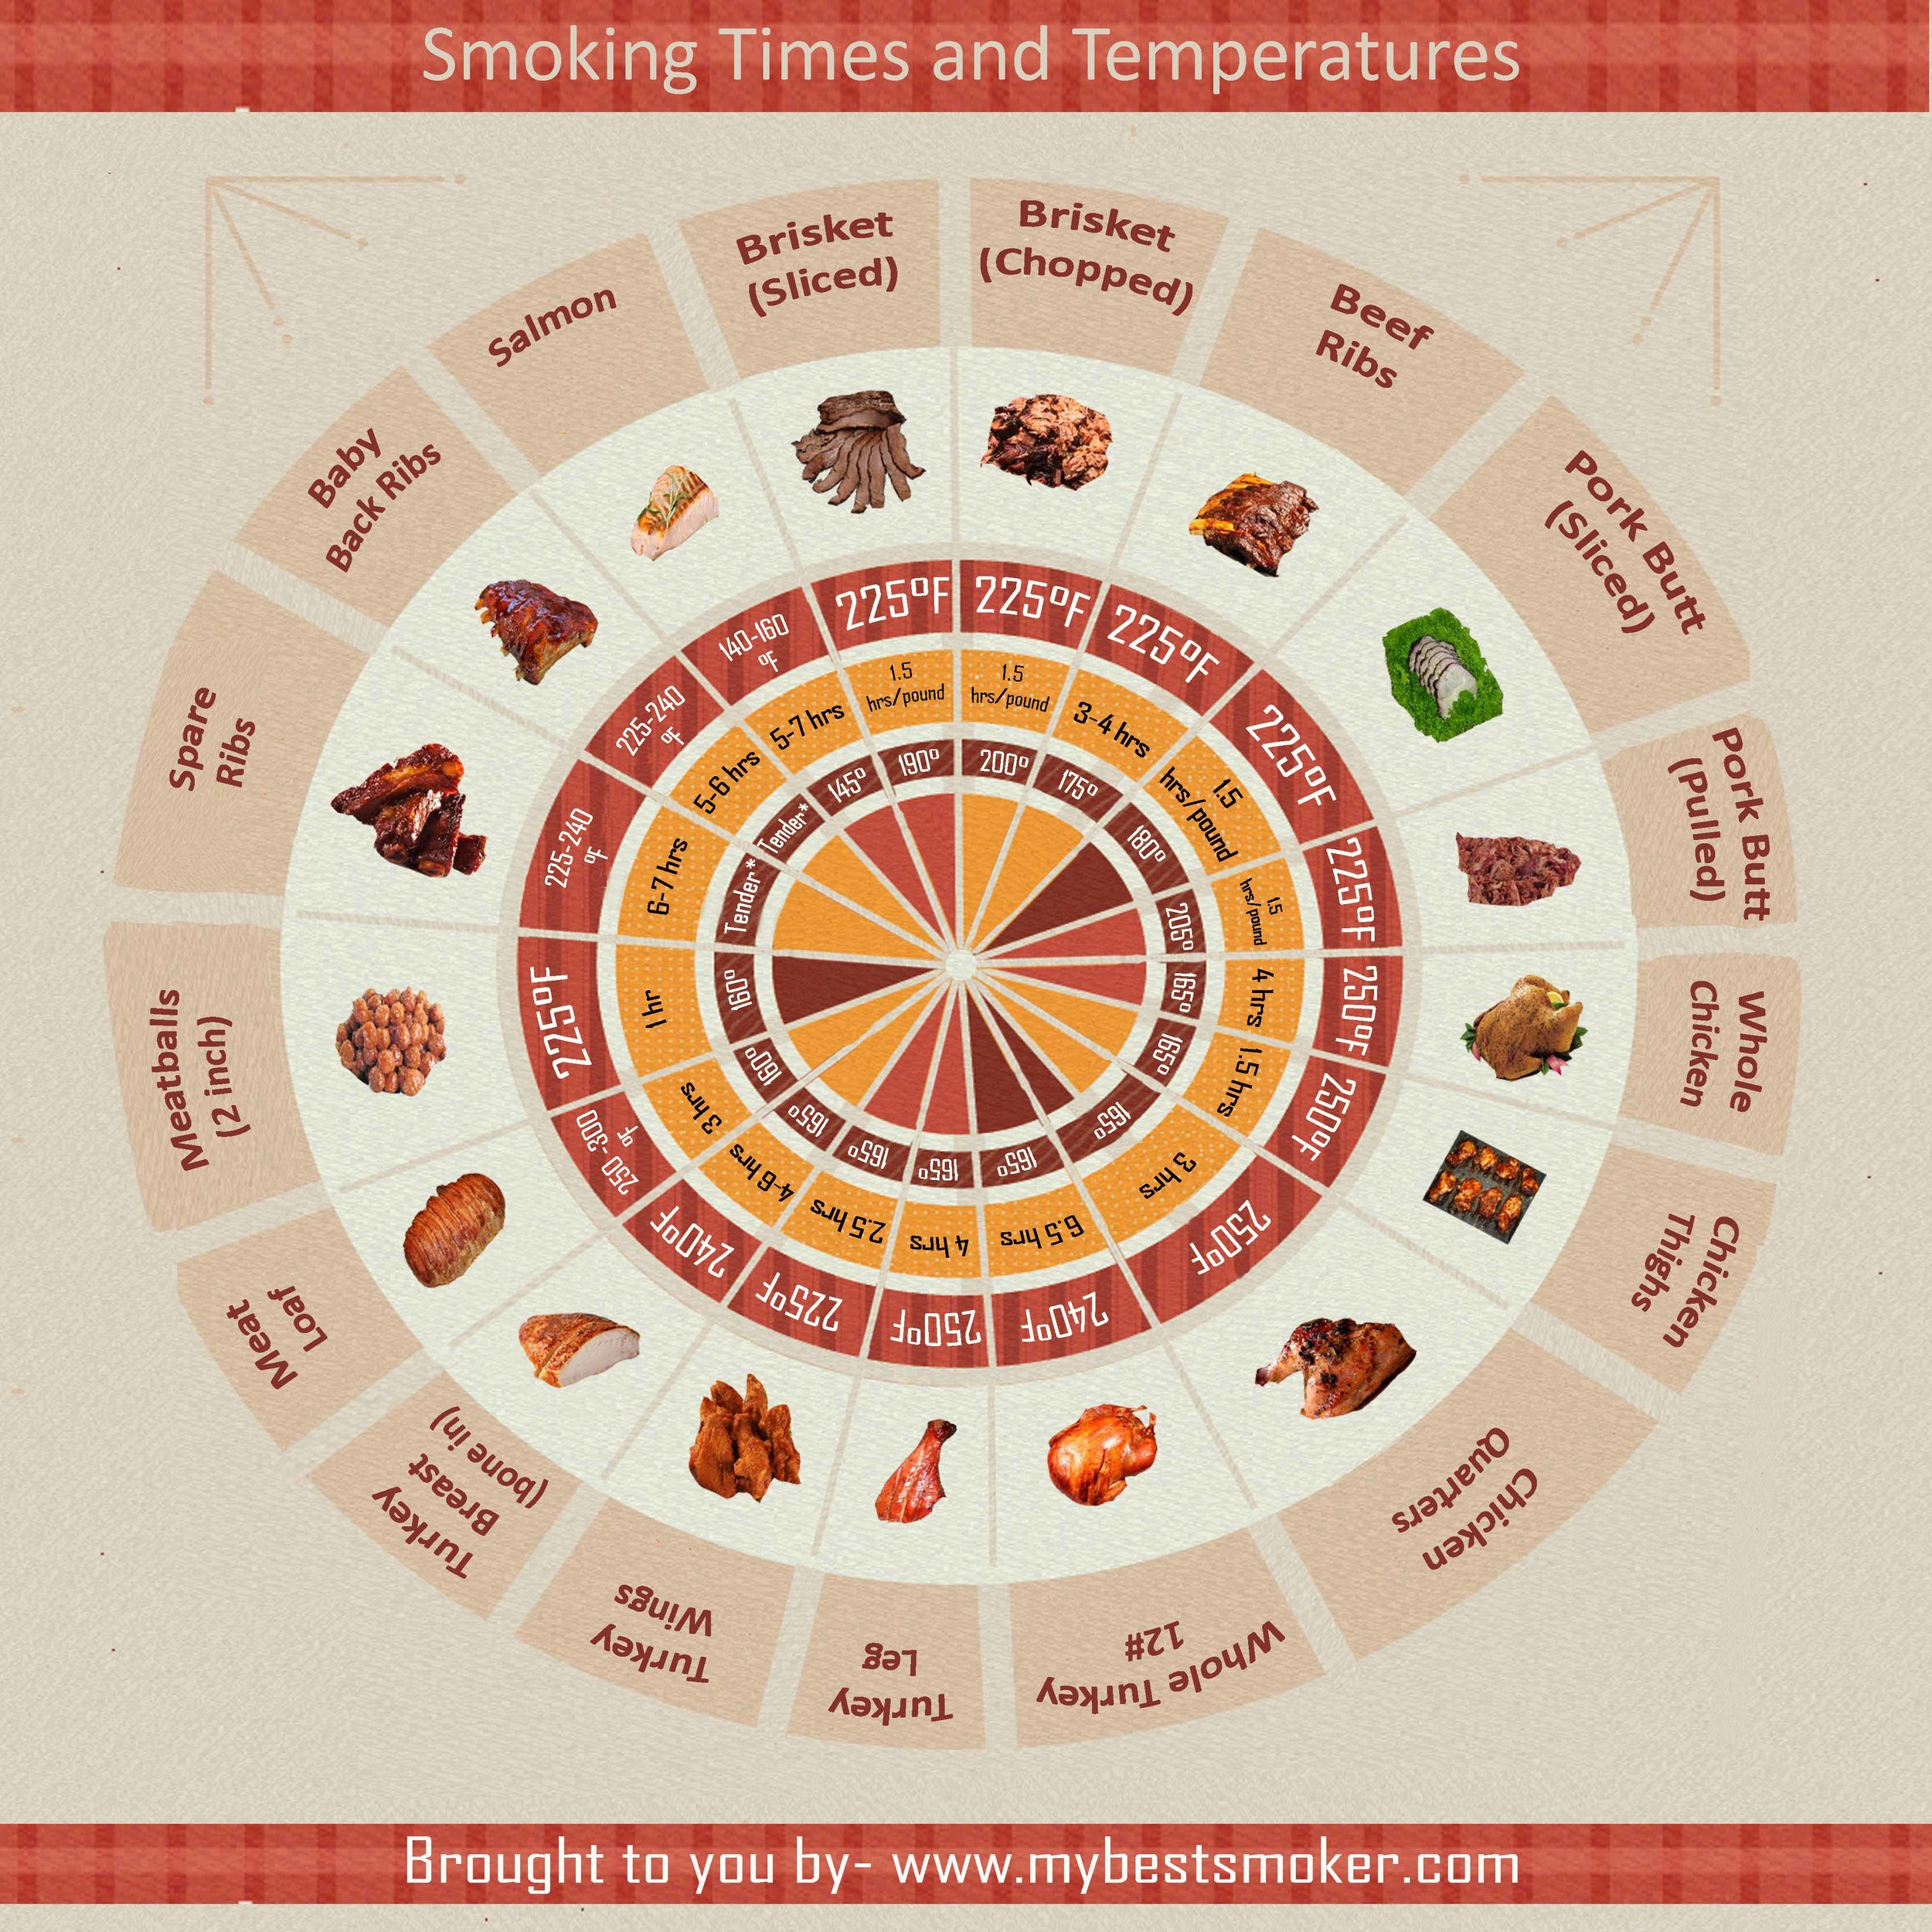 Infographic: Smoking Times and Temperatures